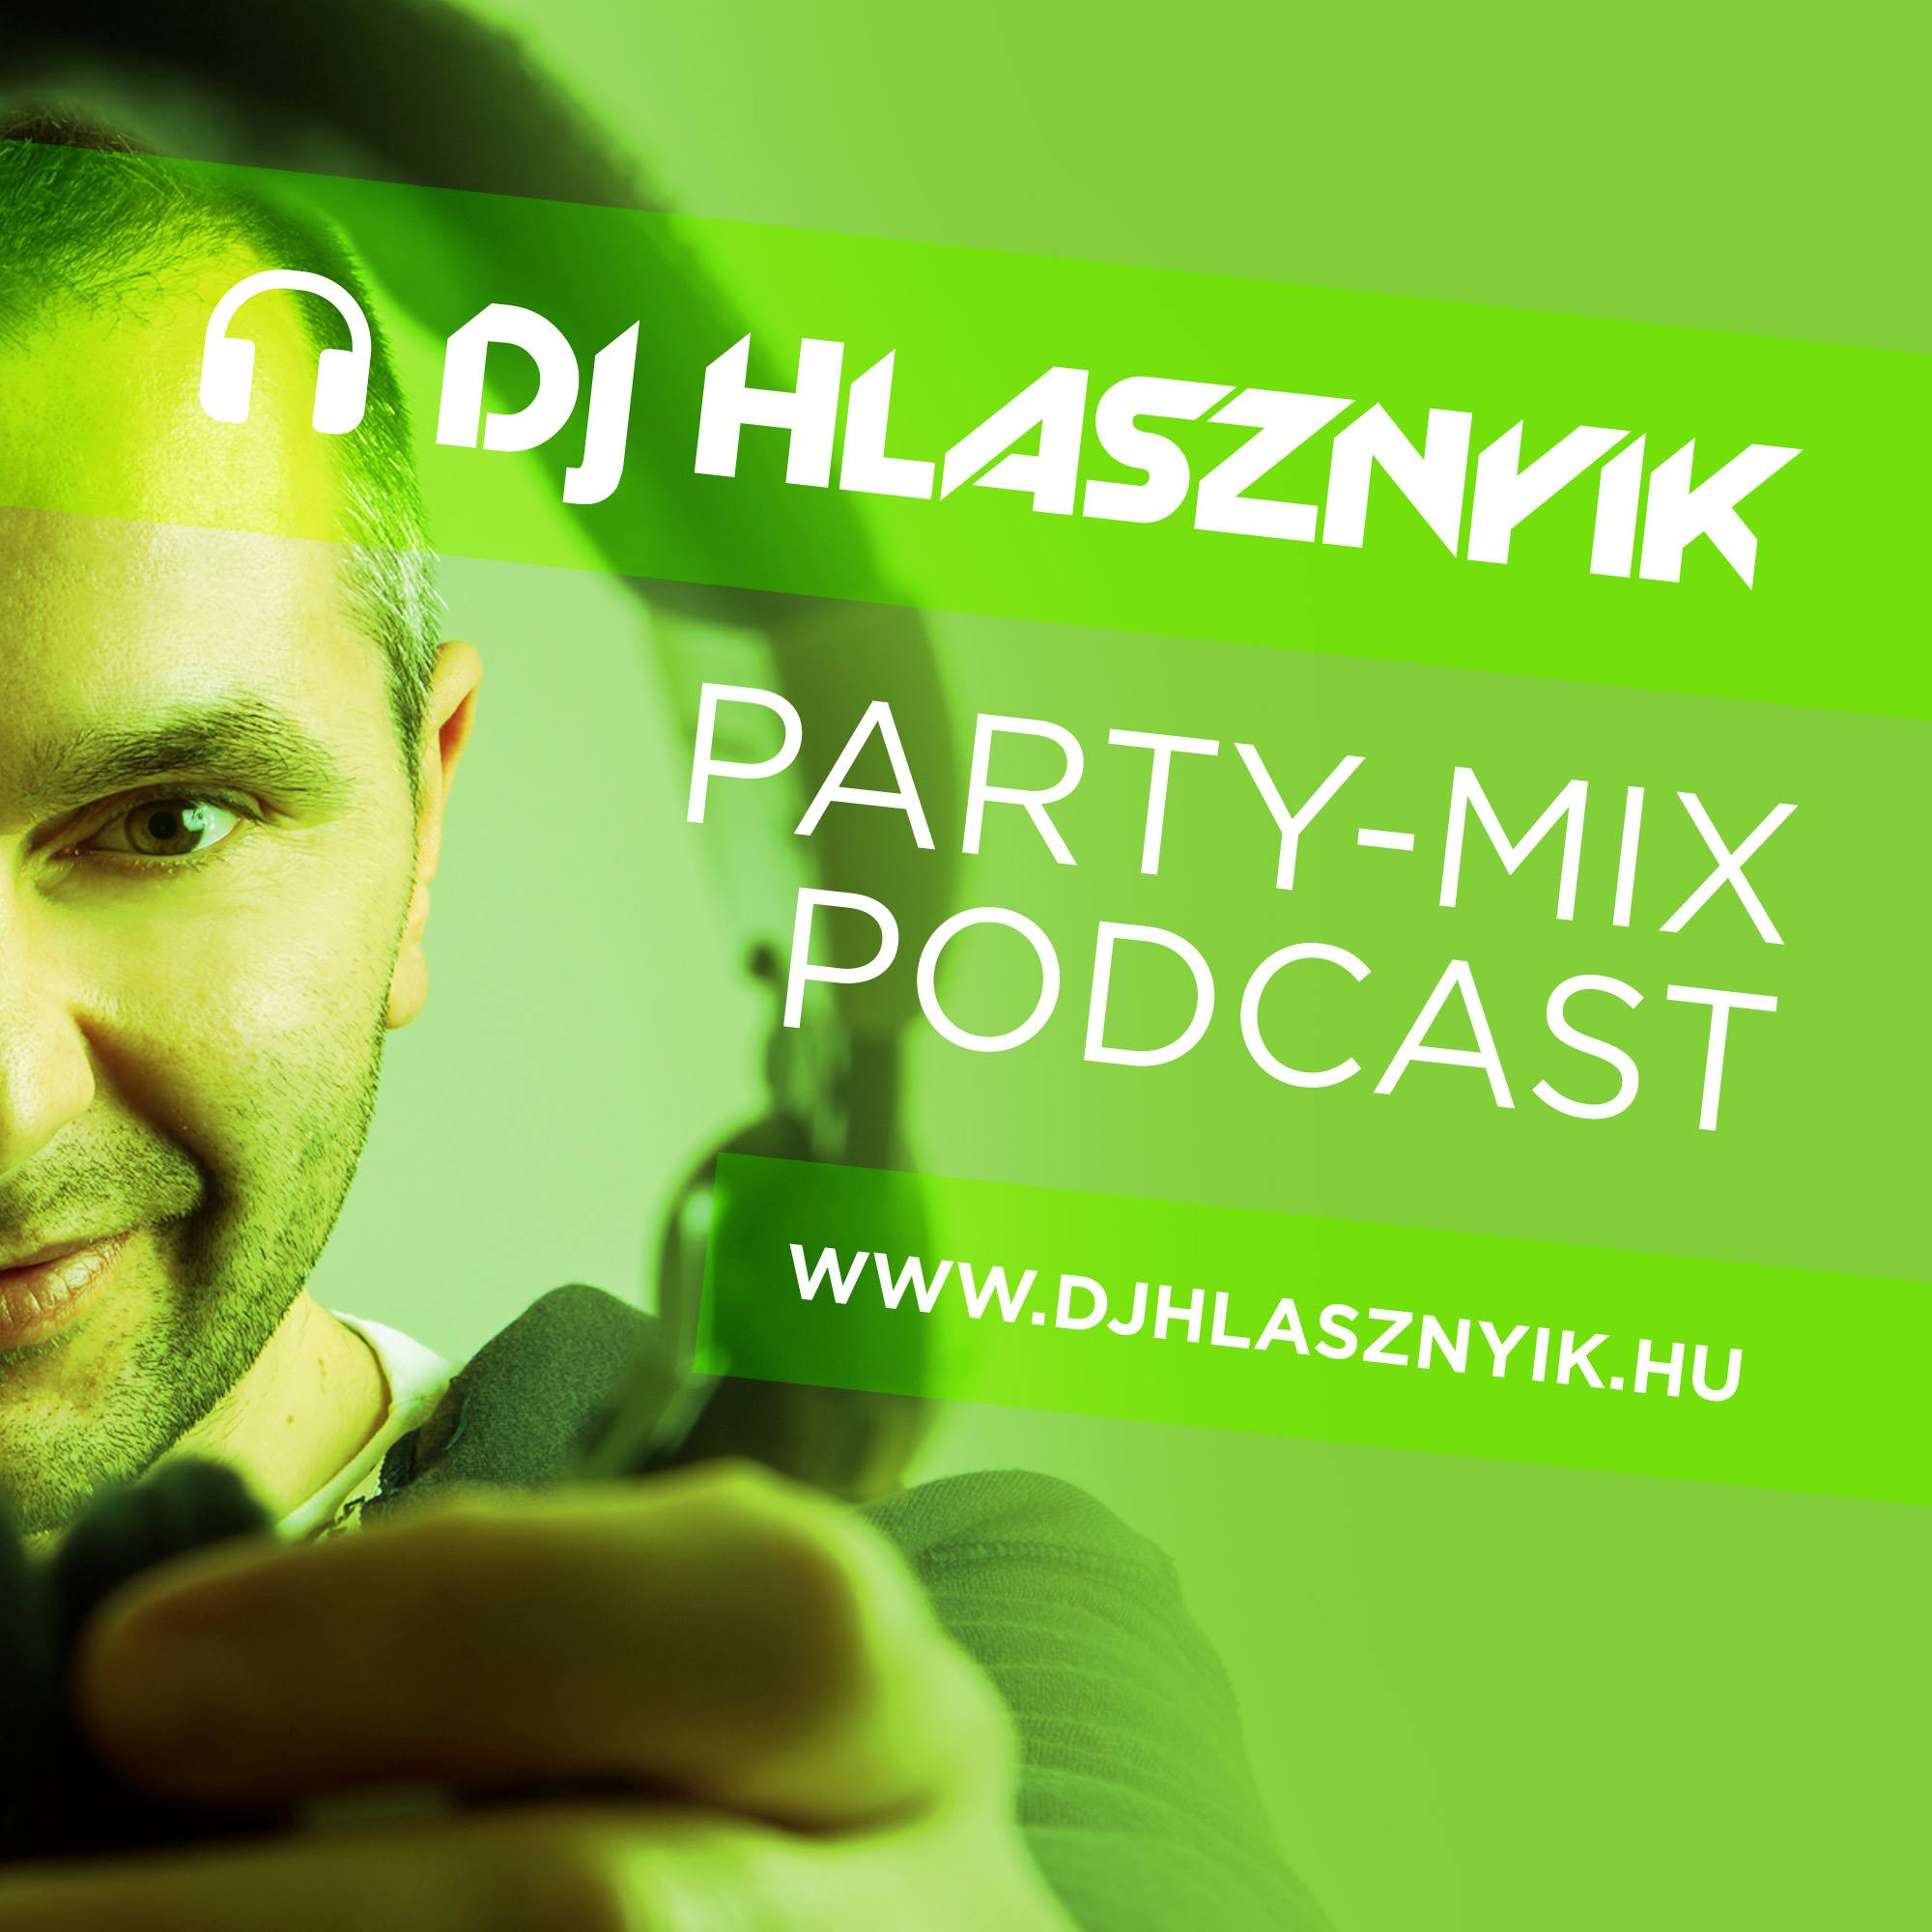 Dj Hlasznyik - Party-mix Podcast